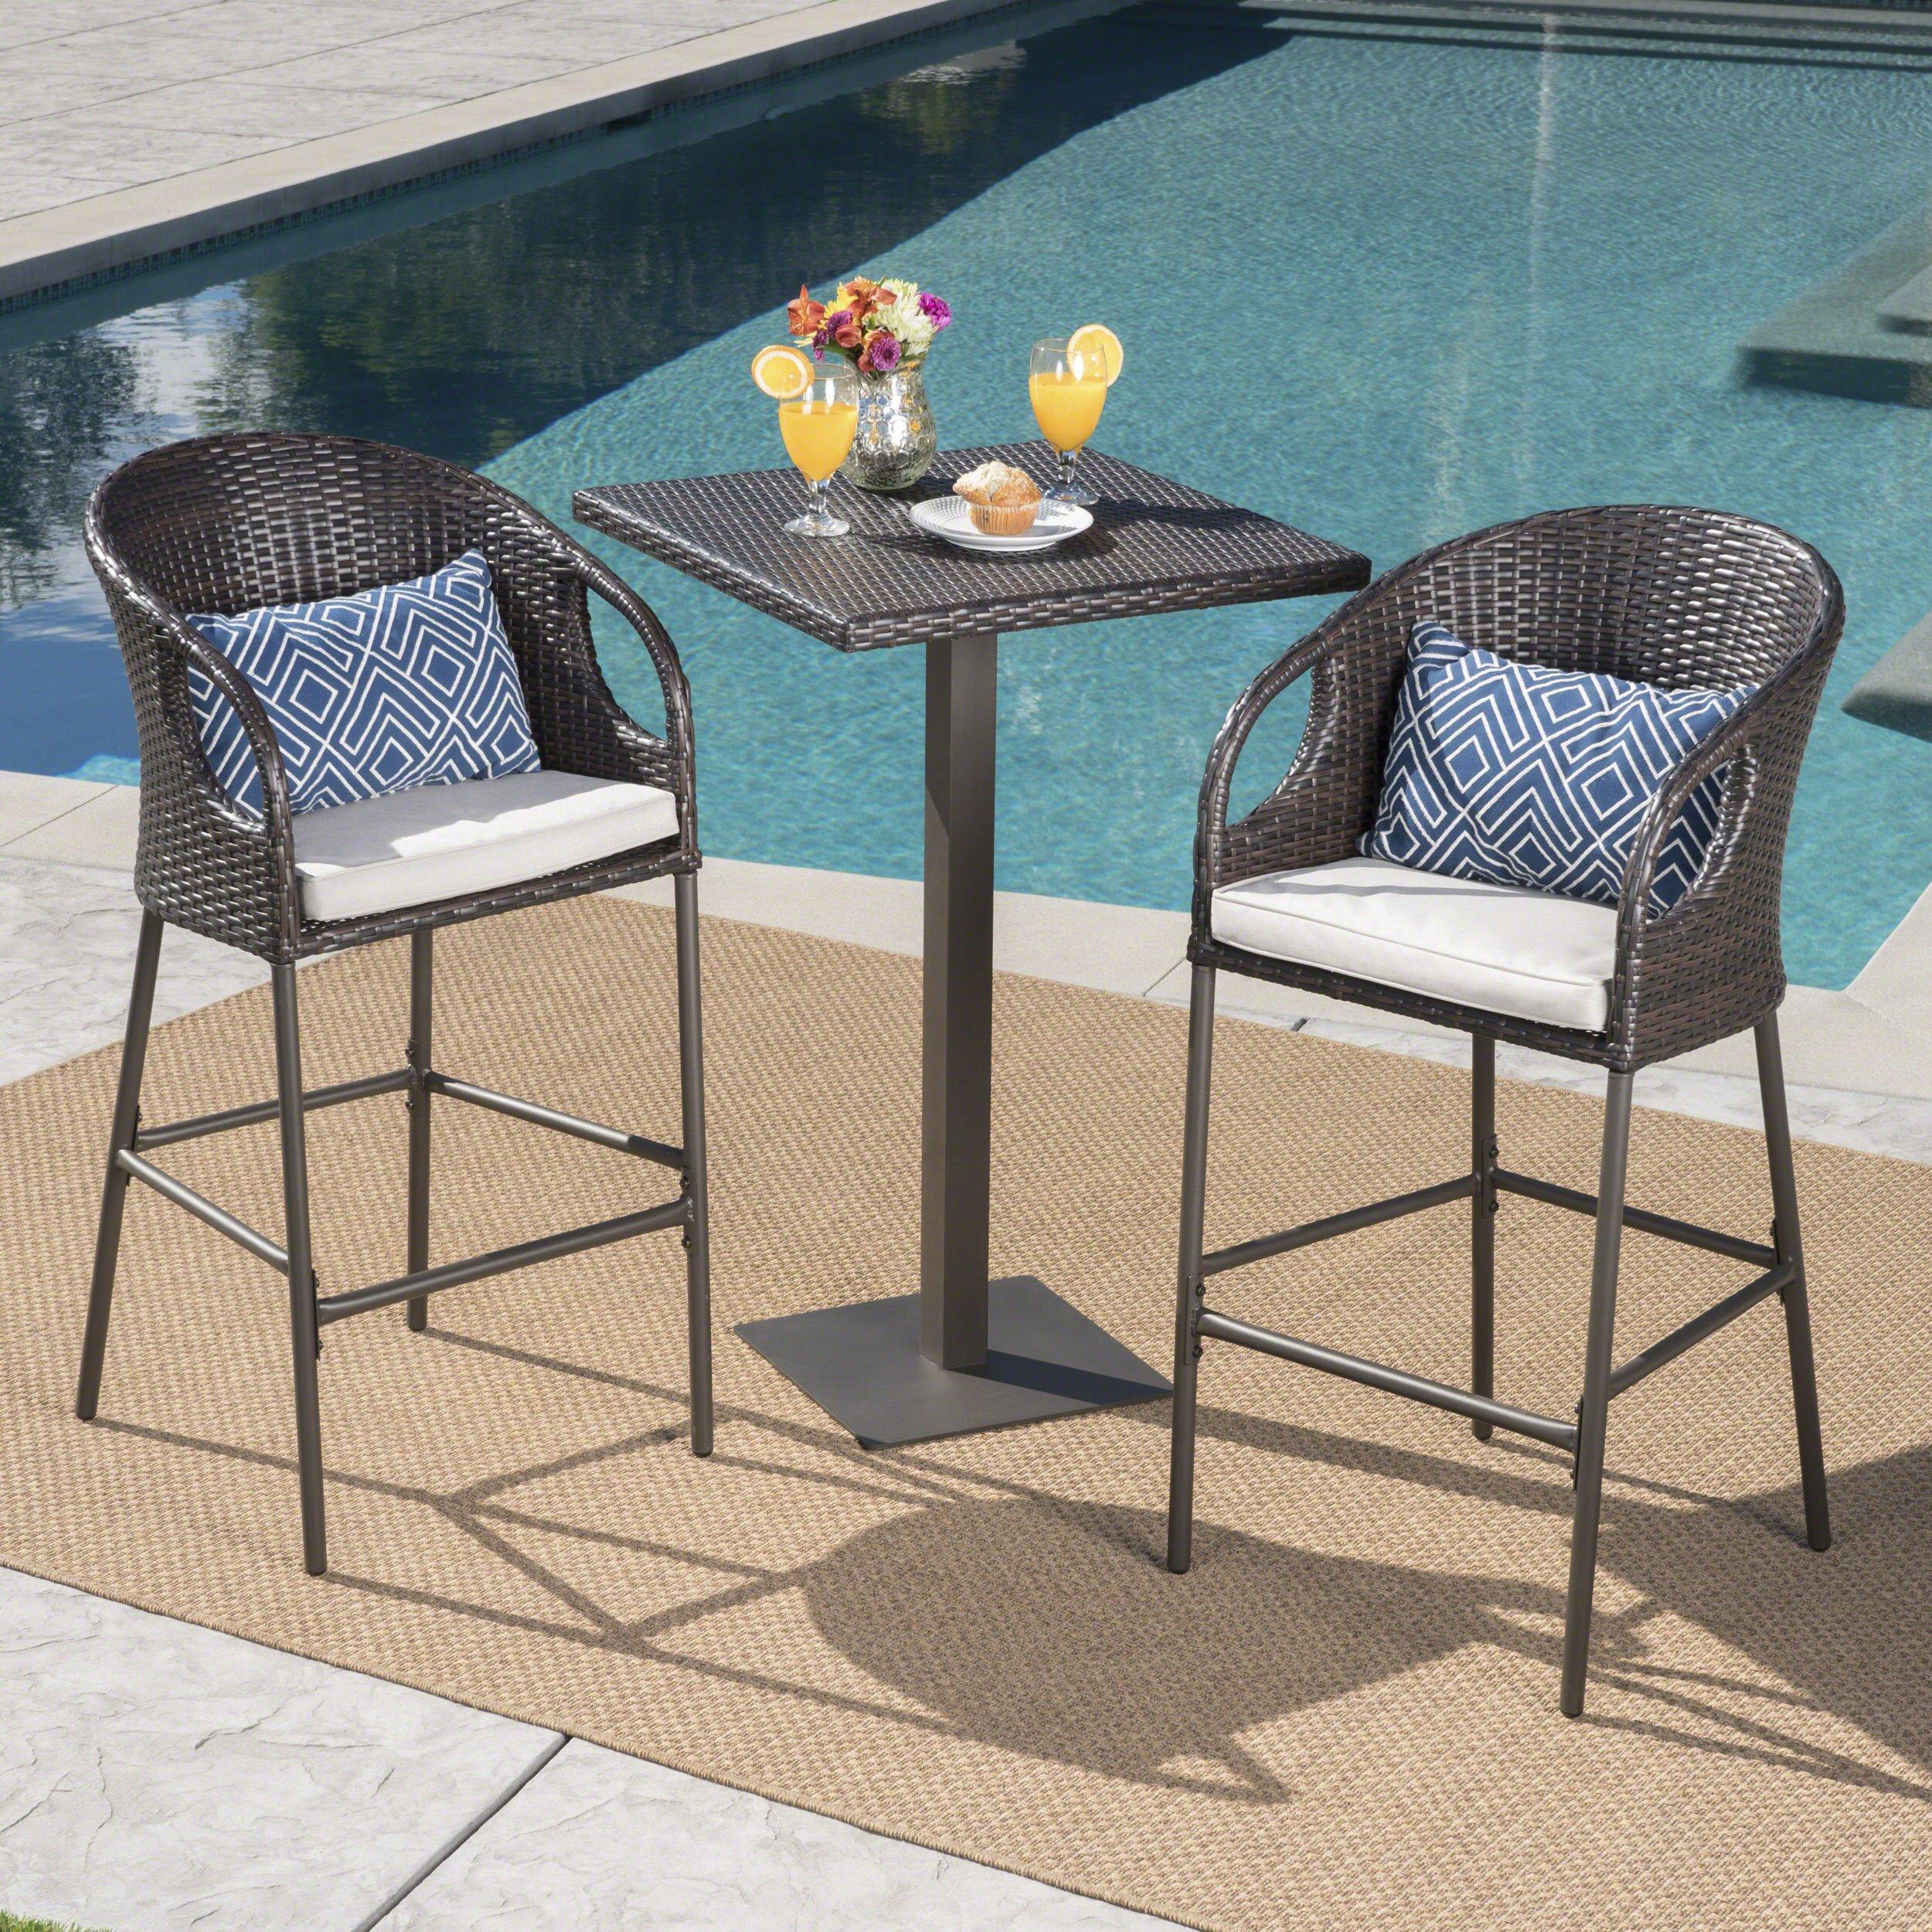 Great Deal Furniture Big Rock Outdoor 3 Piece 40 Inch Multibrown Wicker Square Bar Set with Light Brown Water Resistant Cushions